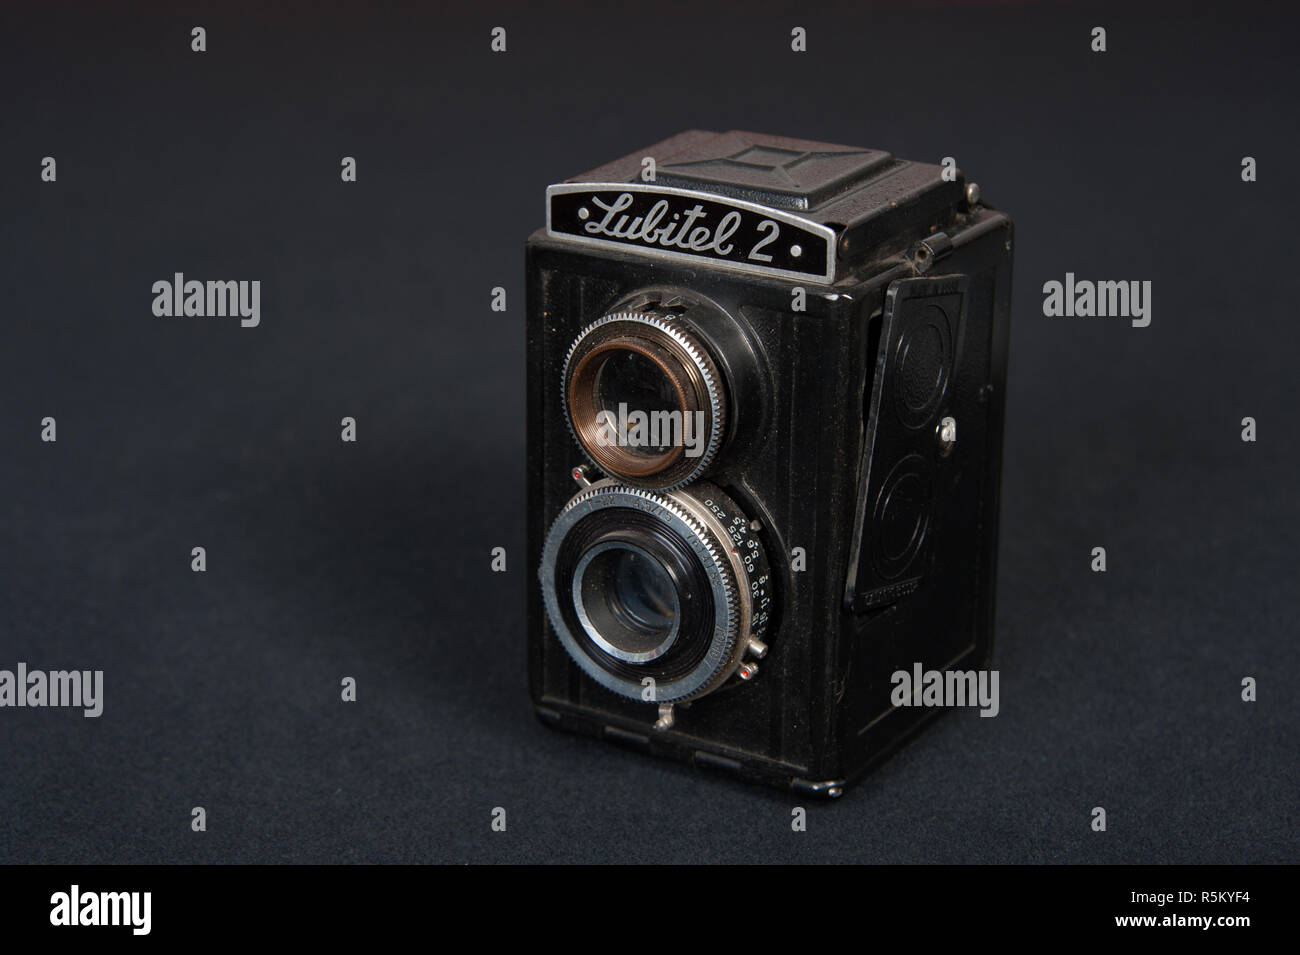 Vintage roll film camera known as the Lubitel 2 Stock Photo